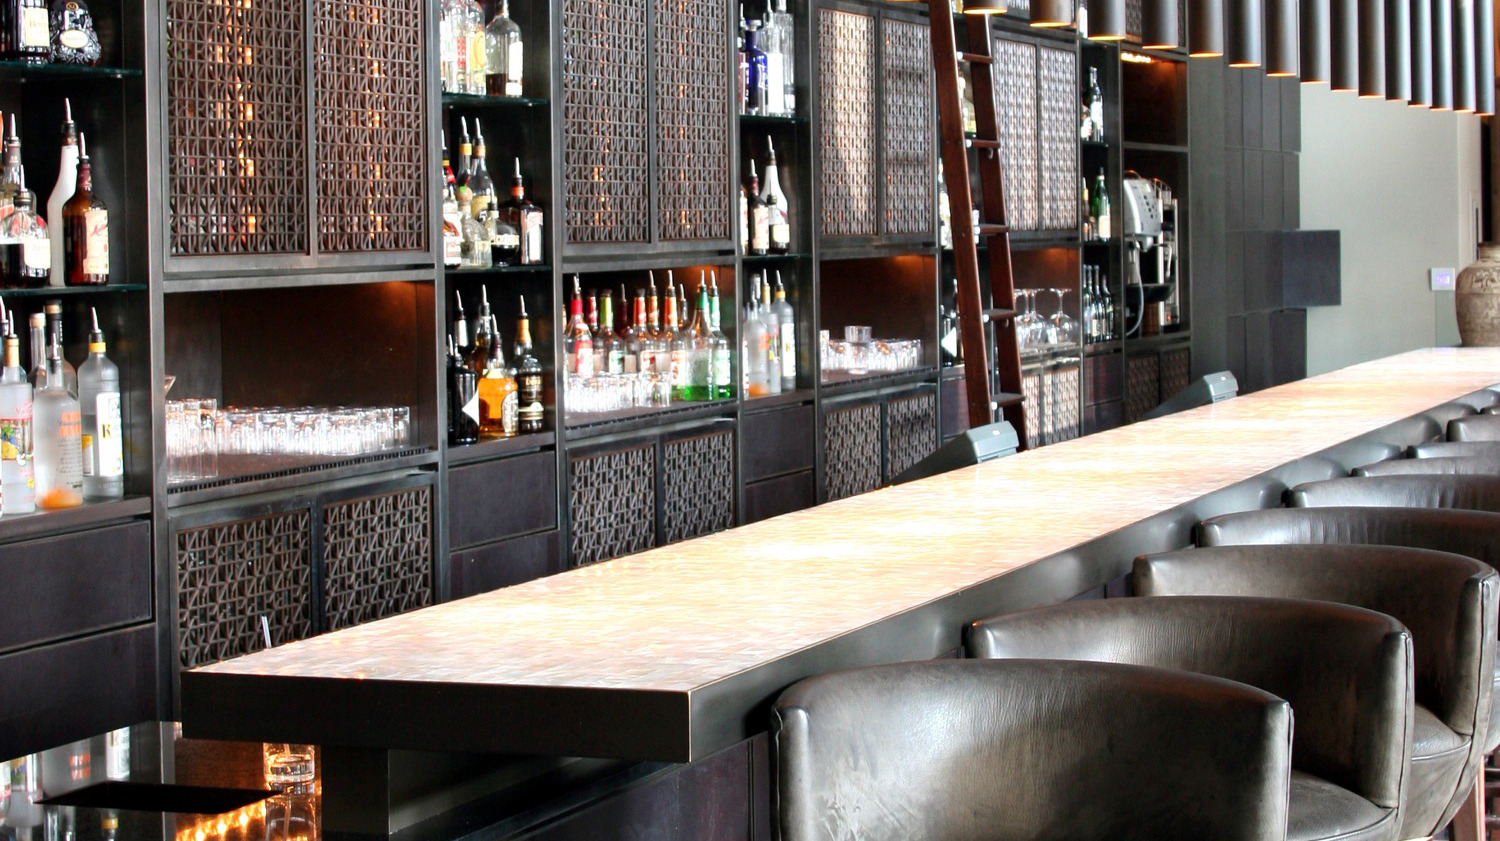 Miami Bars And Lounges Read Reviews And Find Information